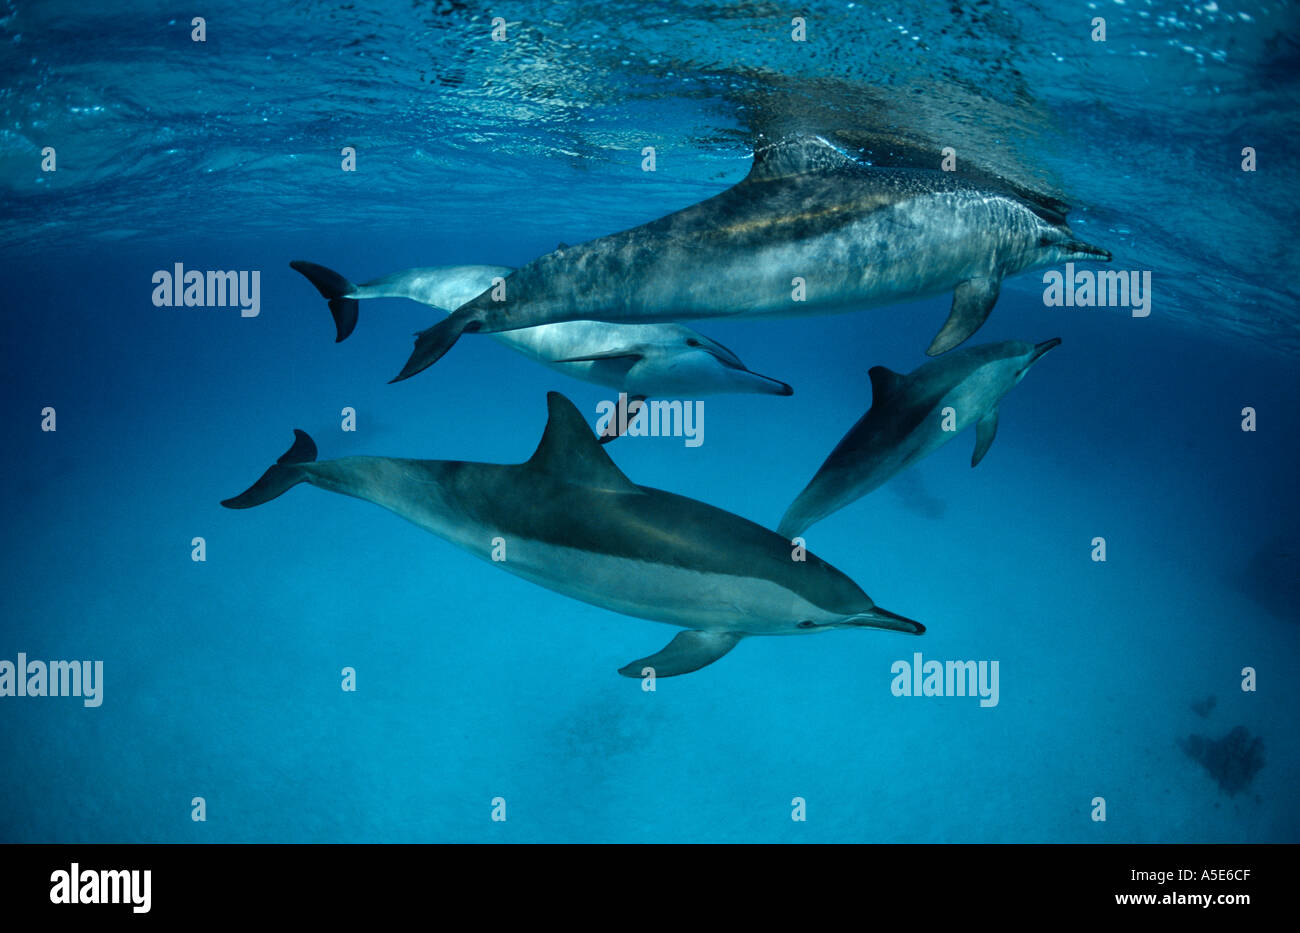 school of wild living dolphins Tursiops aduncus - Stock Image